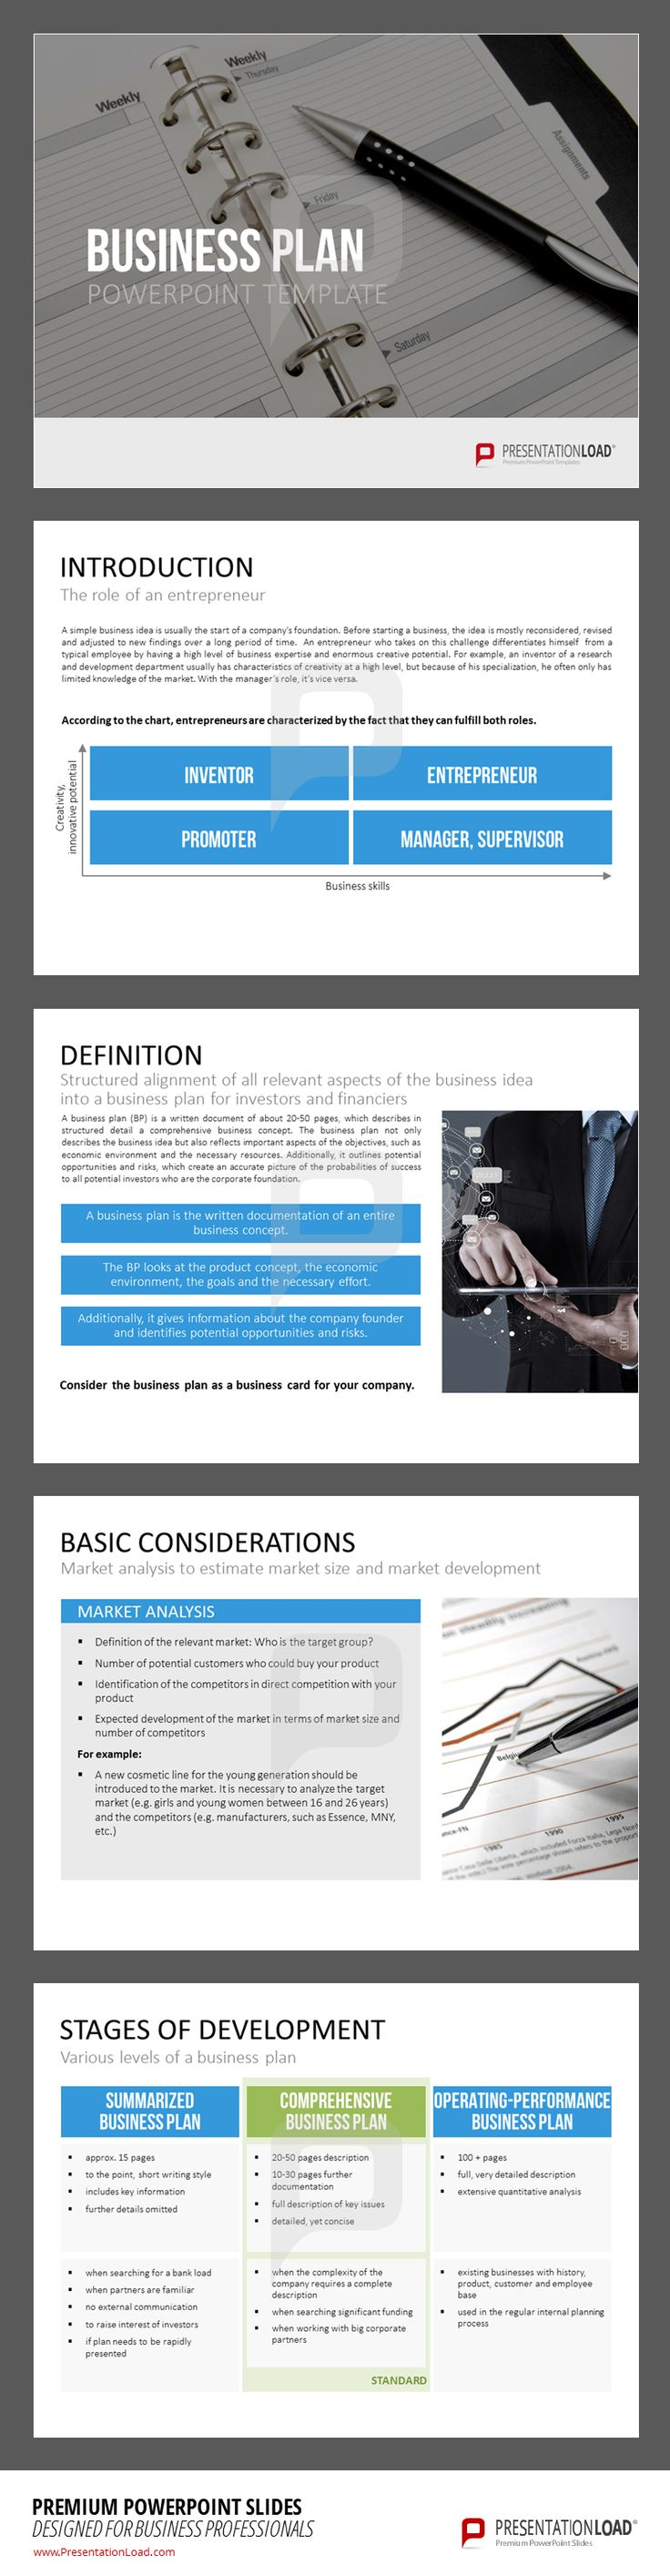 Benefit From Our Business Plan Powerpoint Templates. A Simple Business Idea  Is Usually The Start